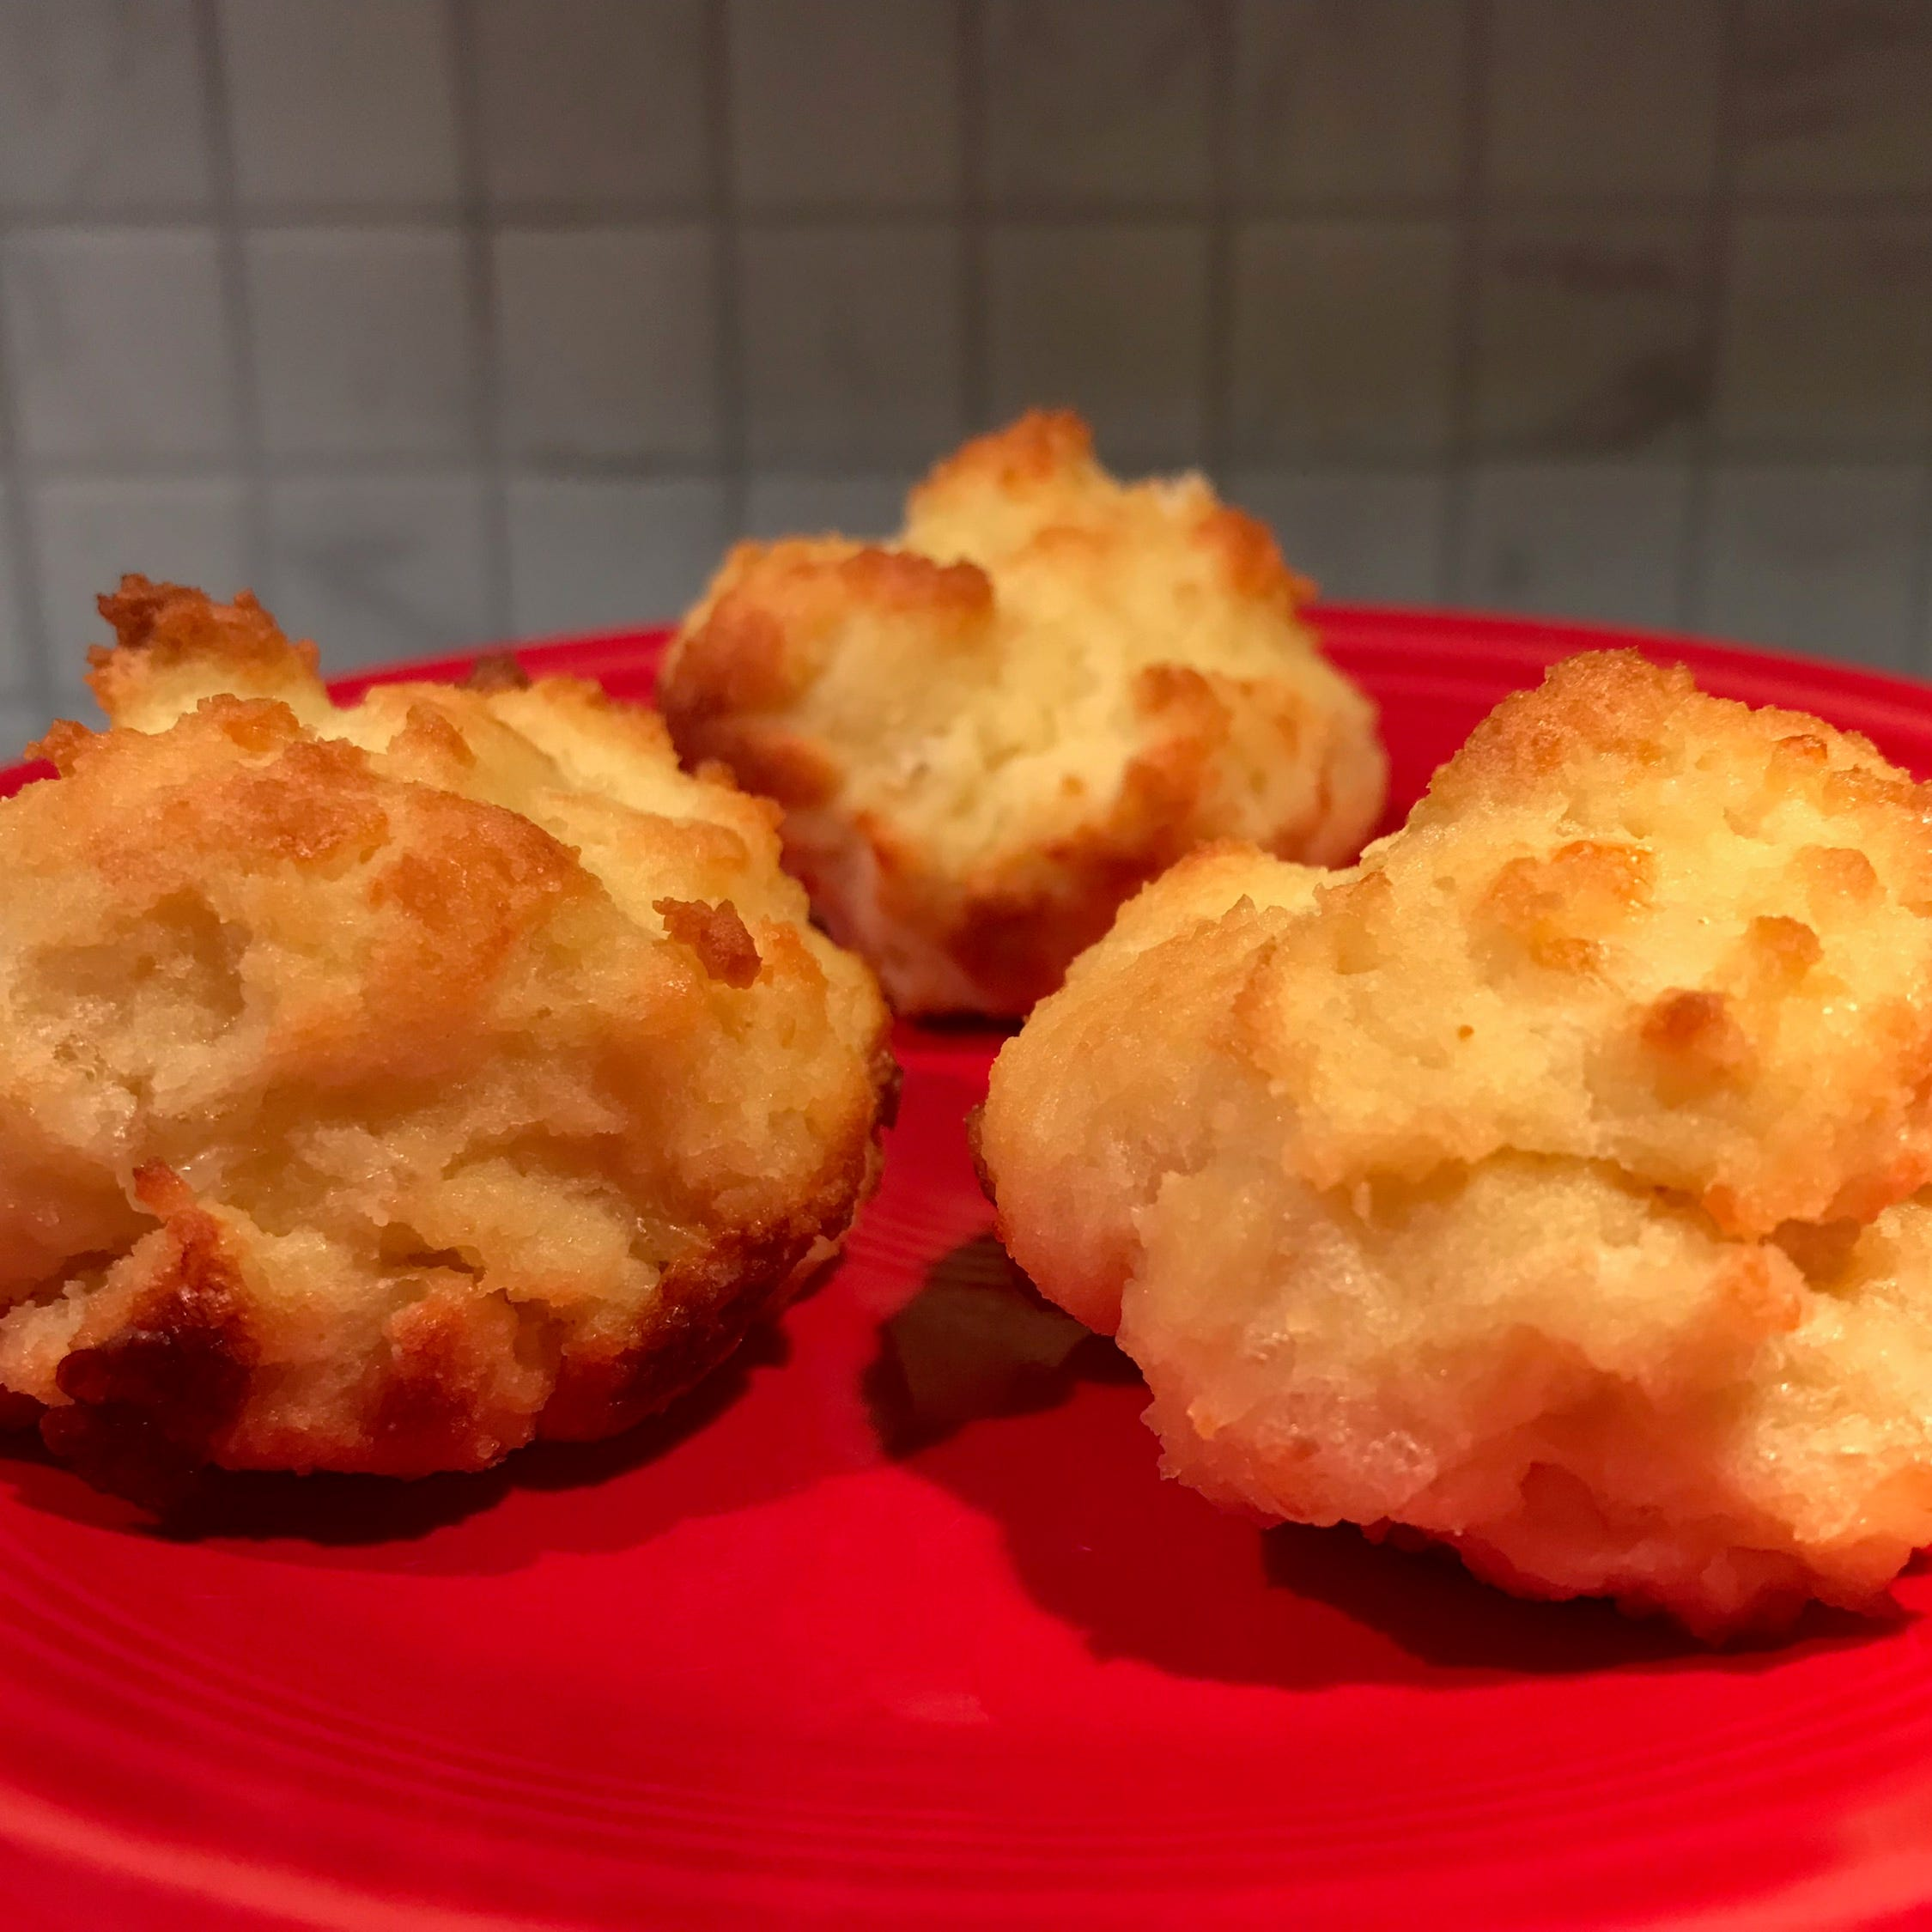 Low-carb biscuit recipe almost as good as real thing